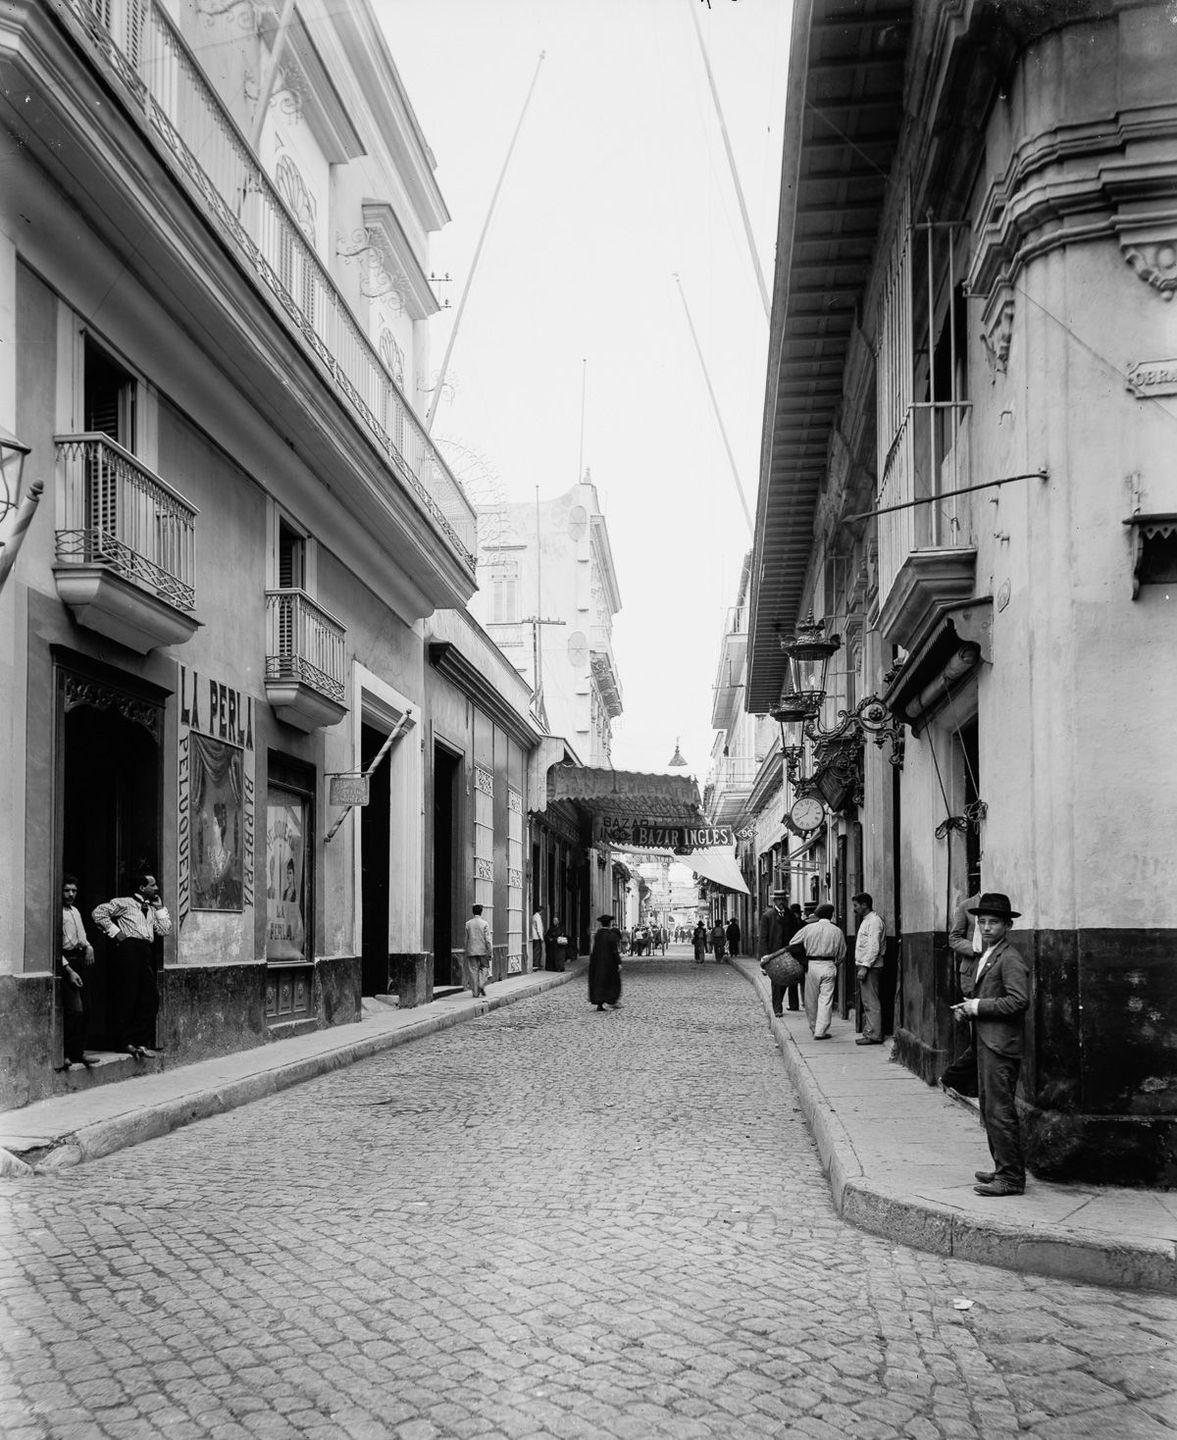 The streets of Old Havana 1900 - Obrapia Street